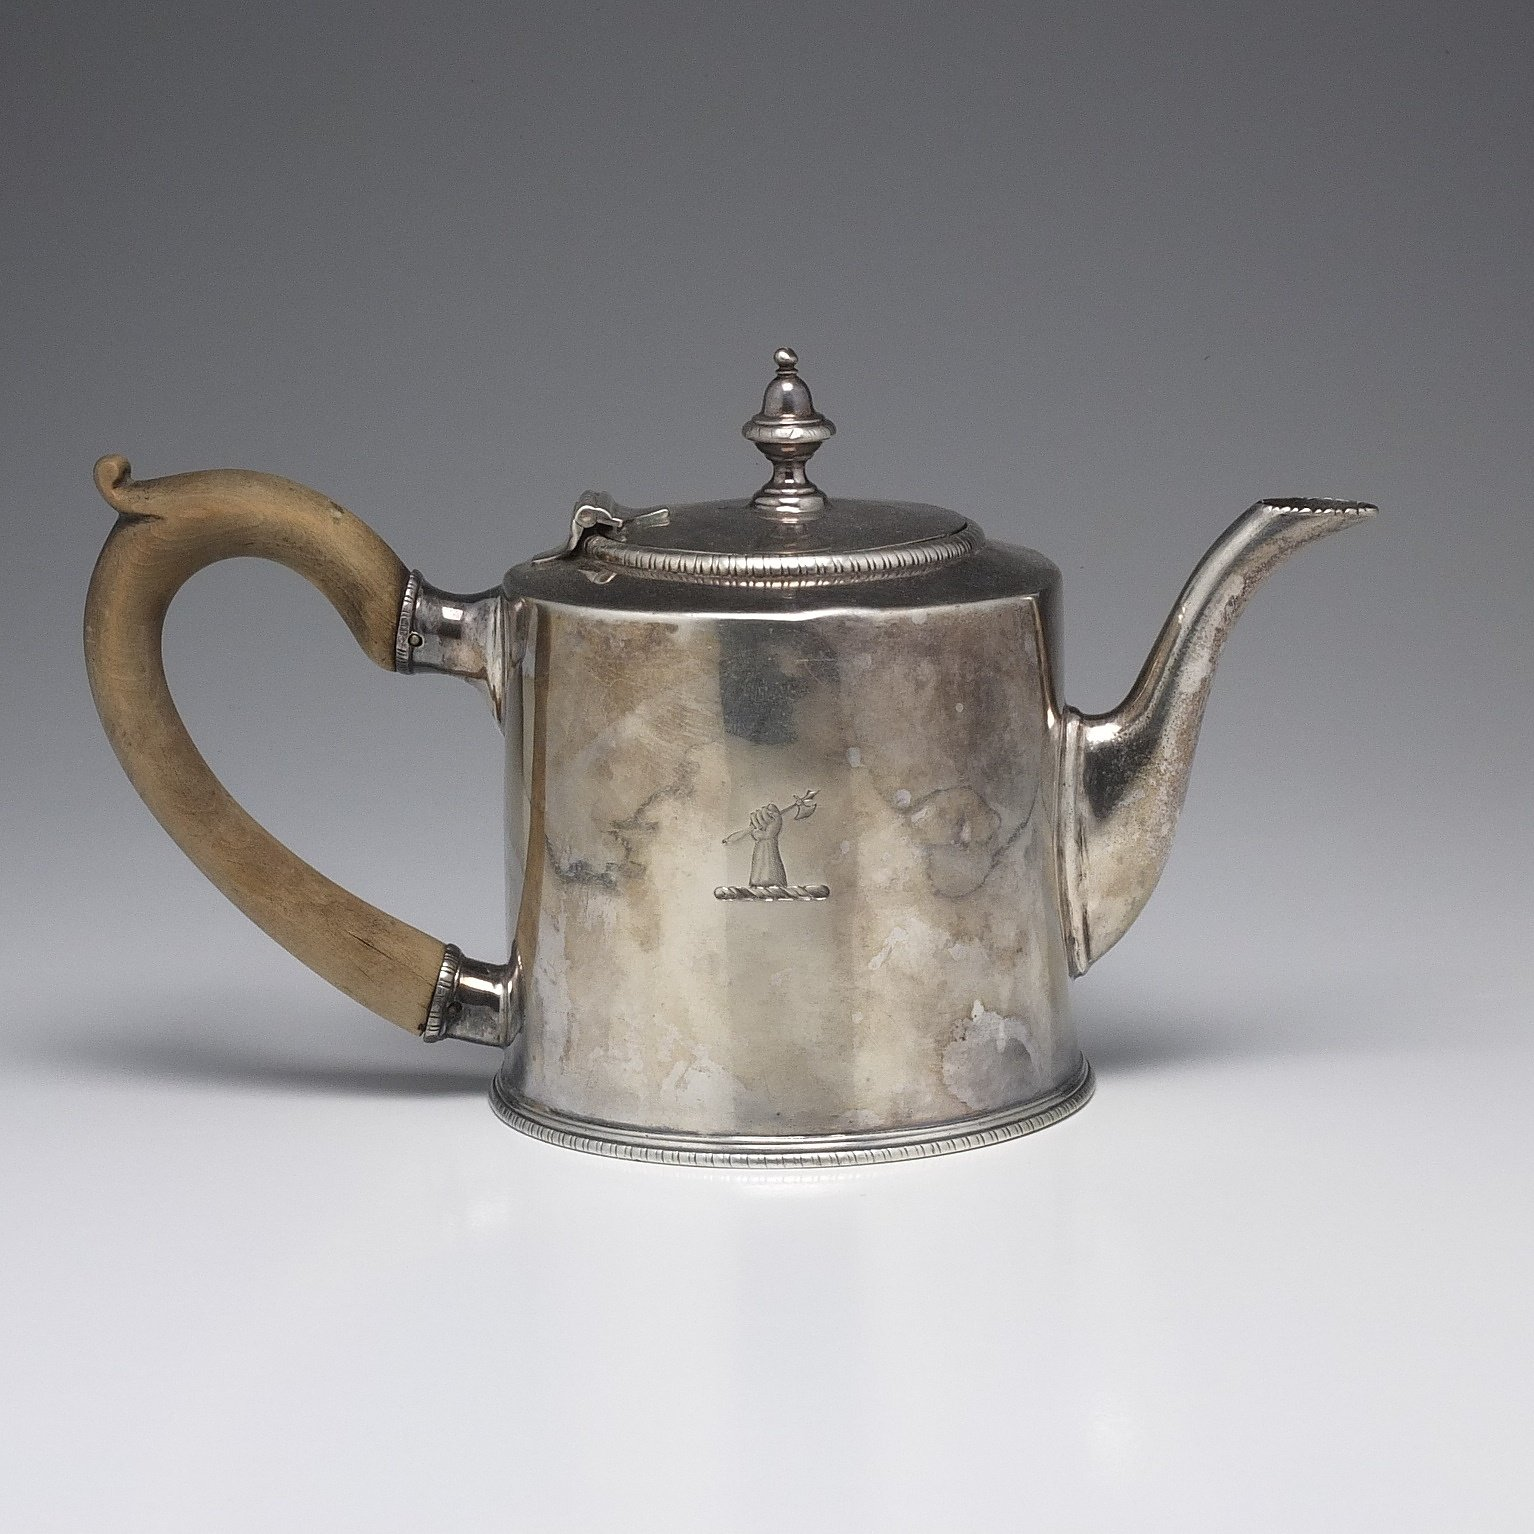 'George III Crested Sterling Silver Teapot Francis Crump London 1772'